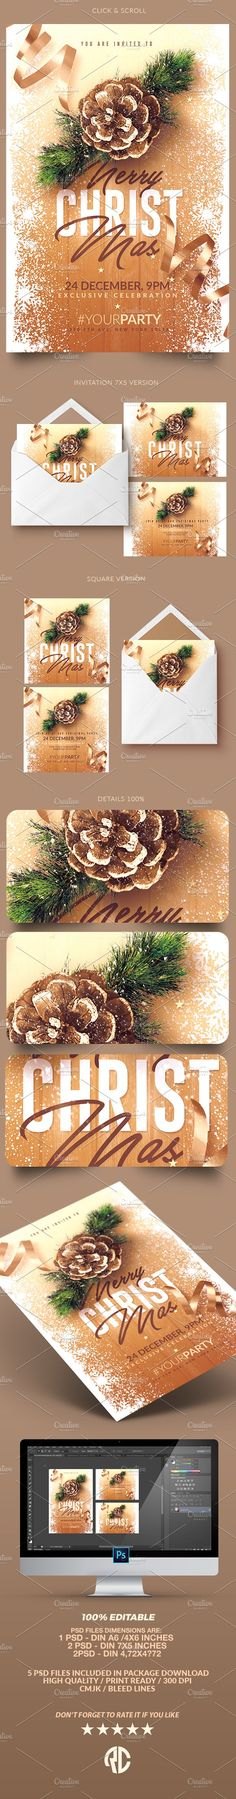 Awesome Christmas Invitations - Psd Package - Templates                                                                                                                                                                                 More